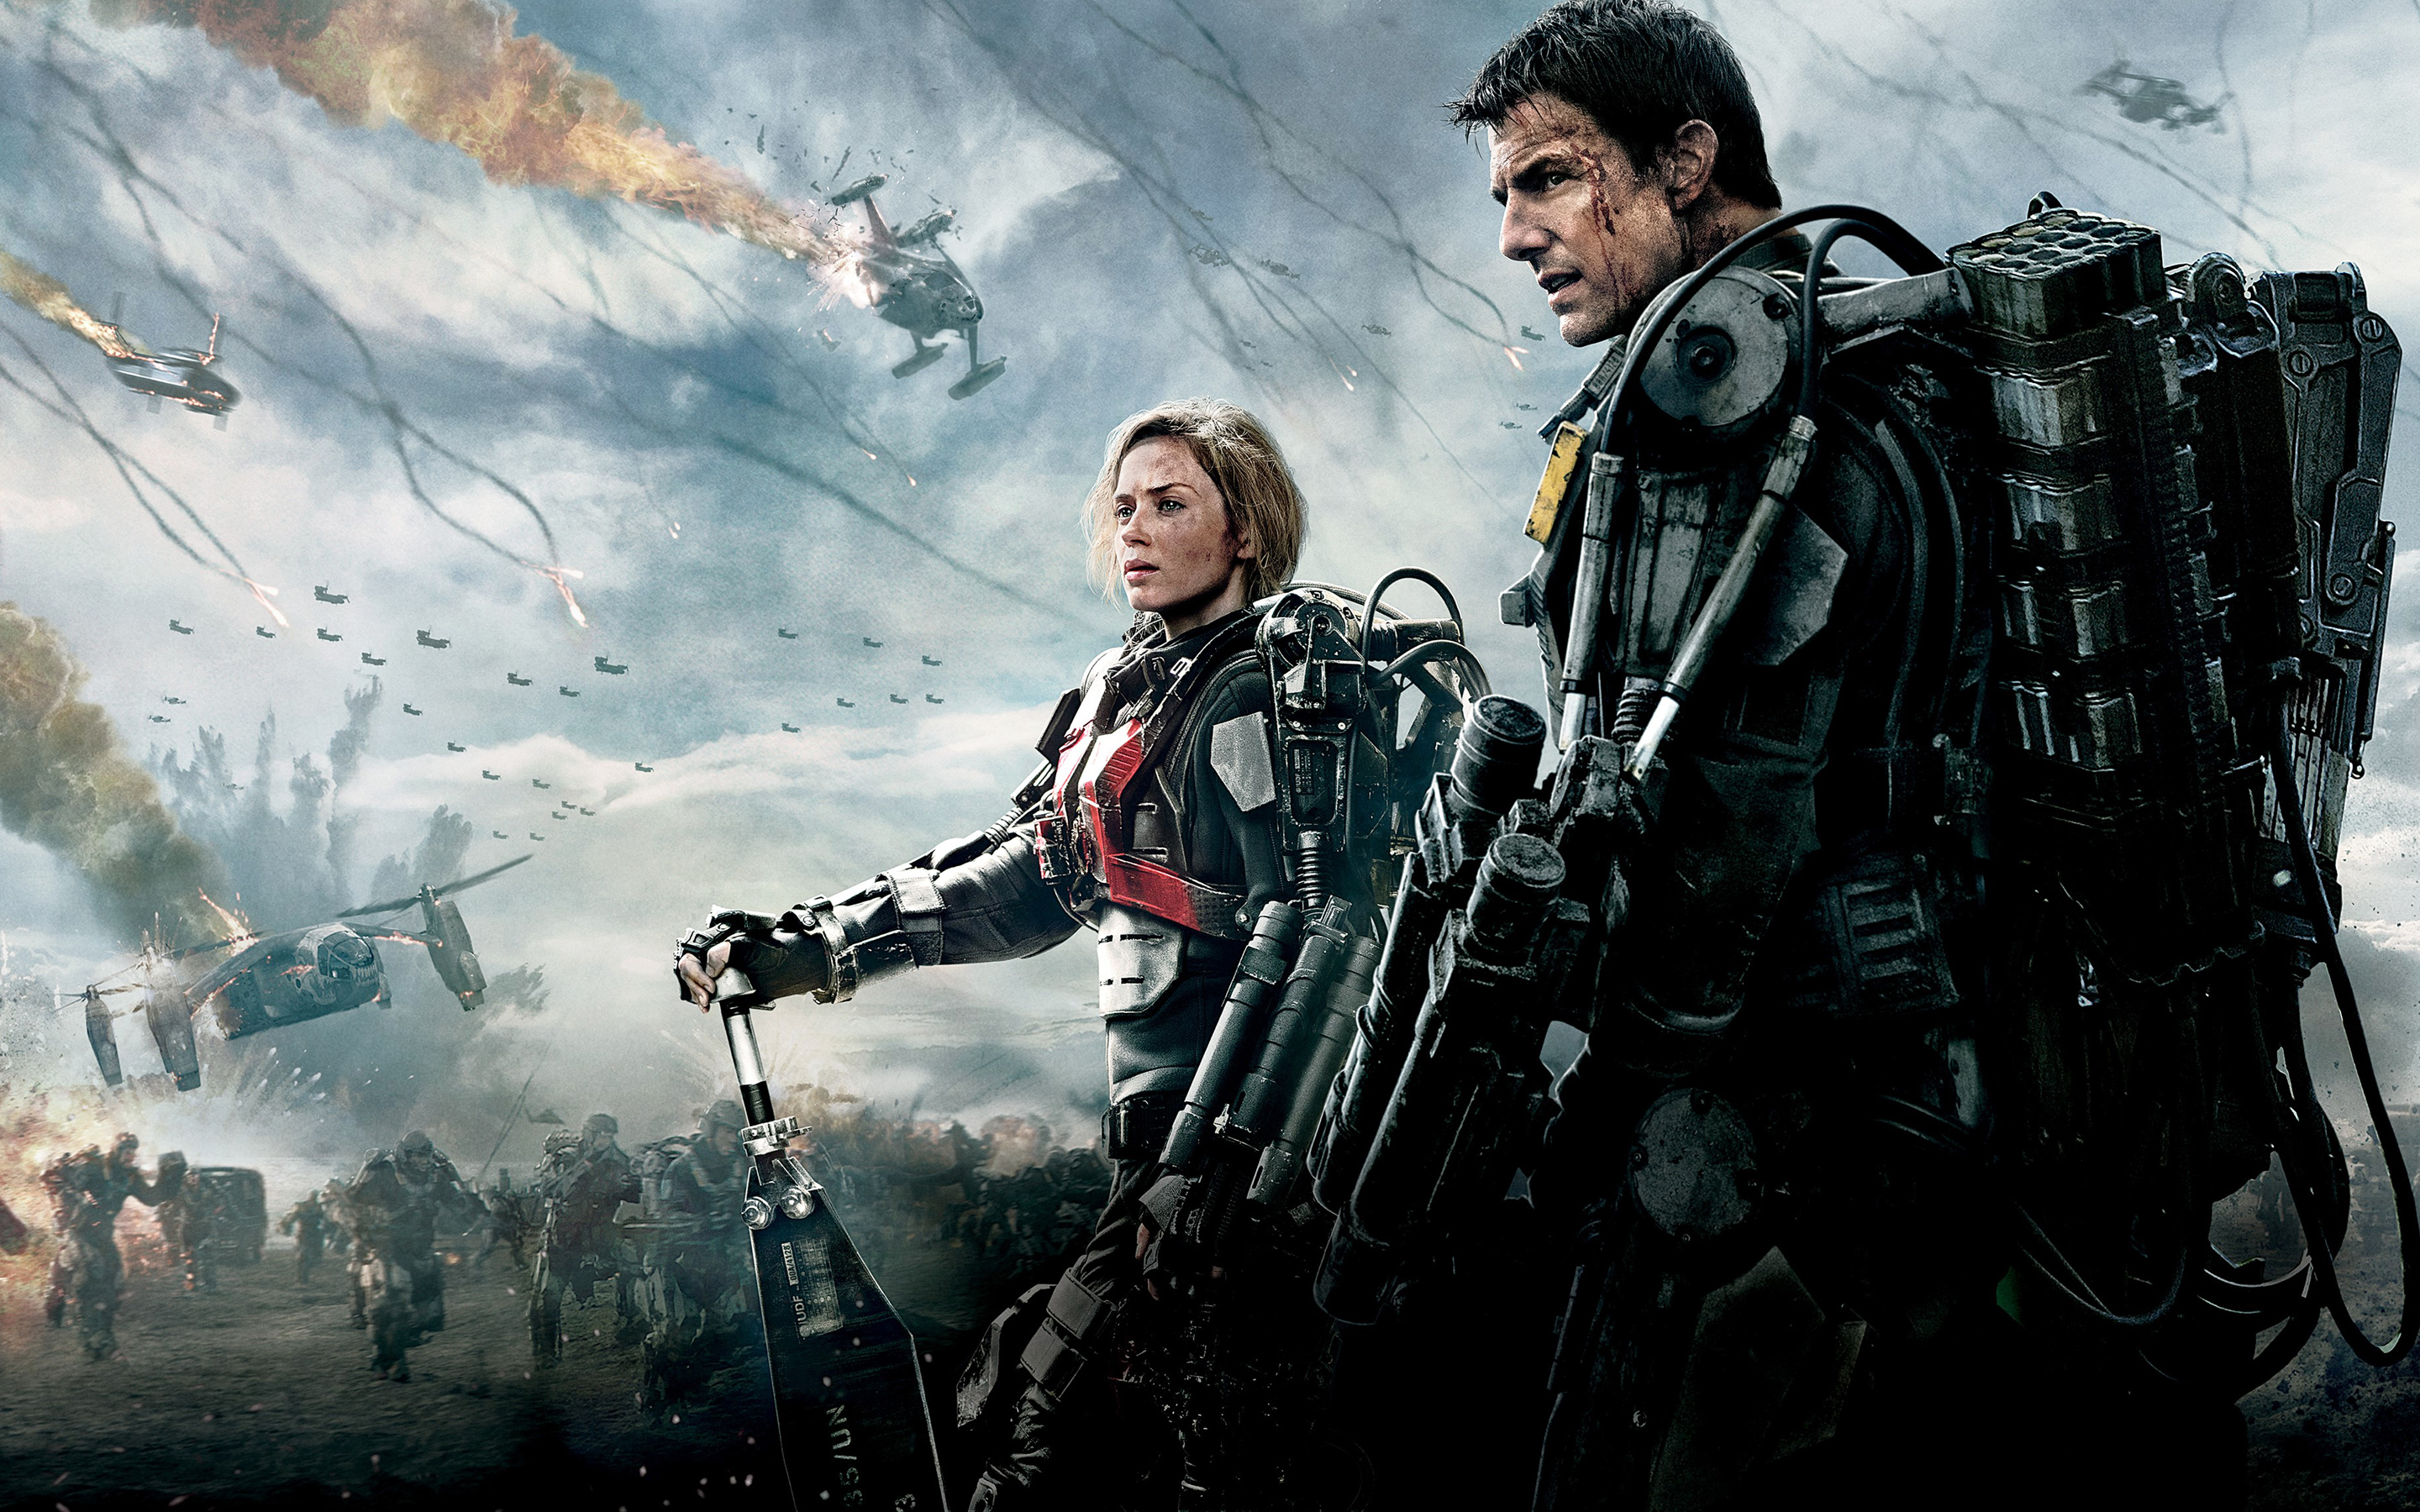 Edge Of Tomorrow Emily Blunt Tom Cruise Wallpaper HD 2880x1800